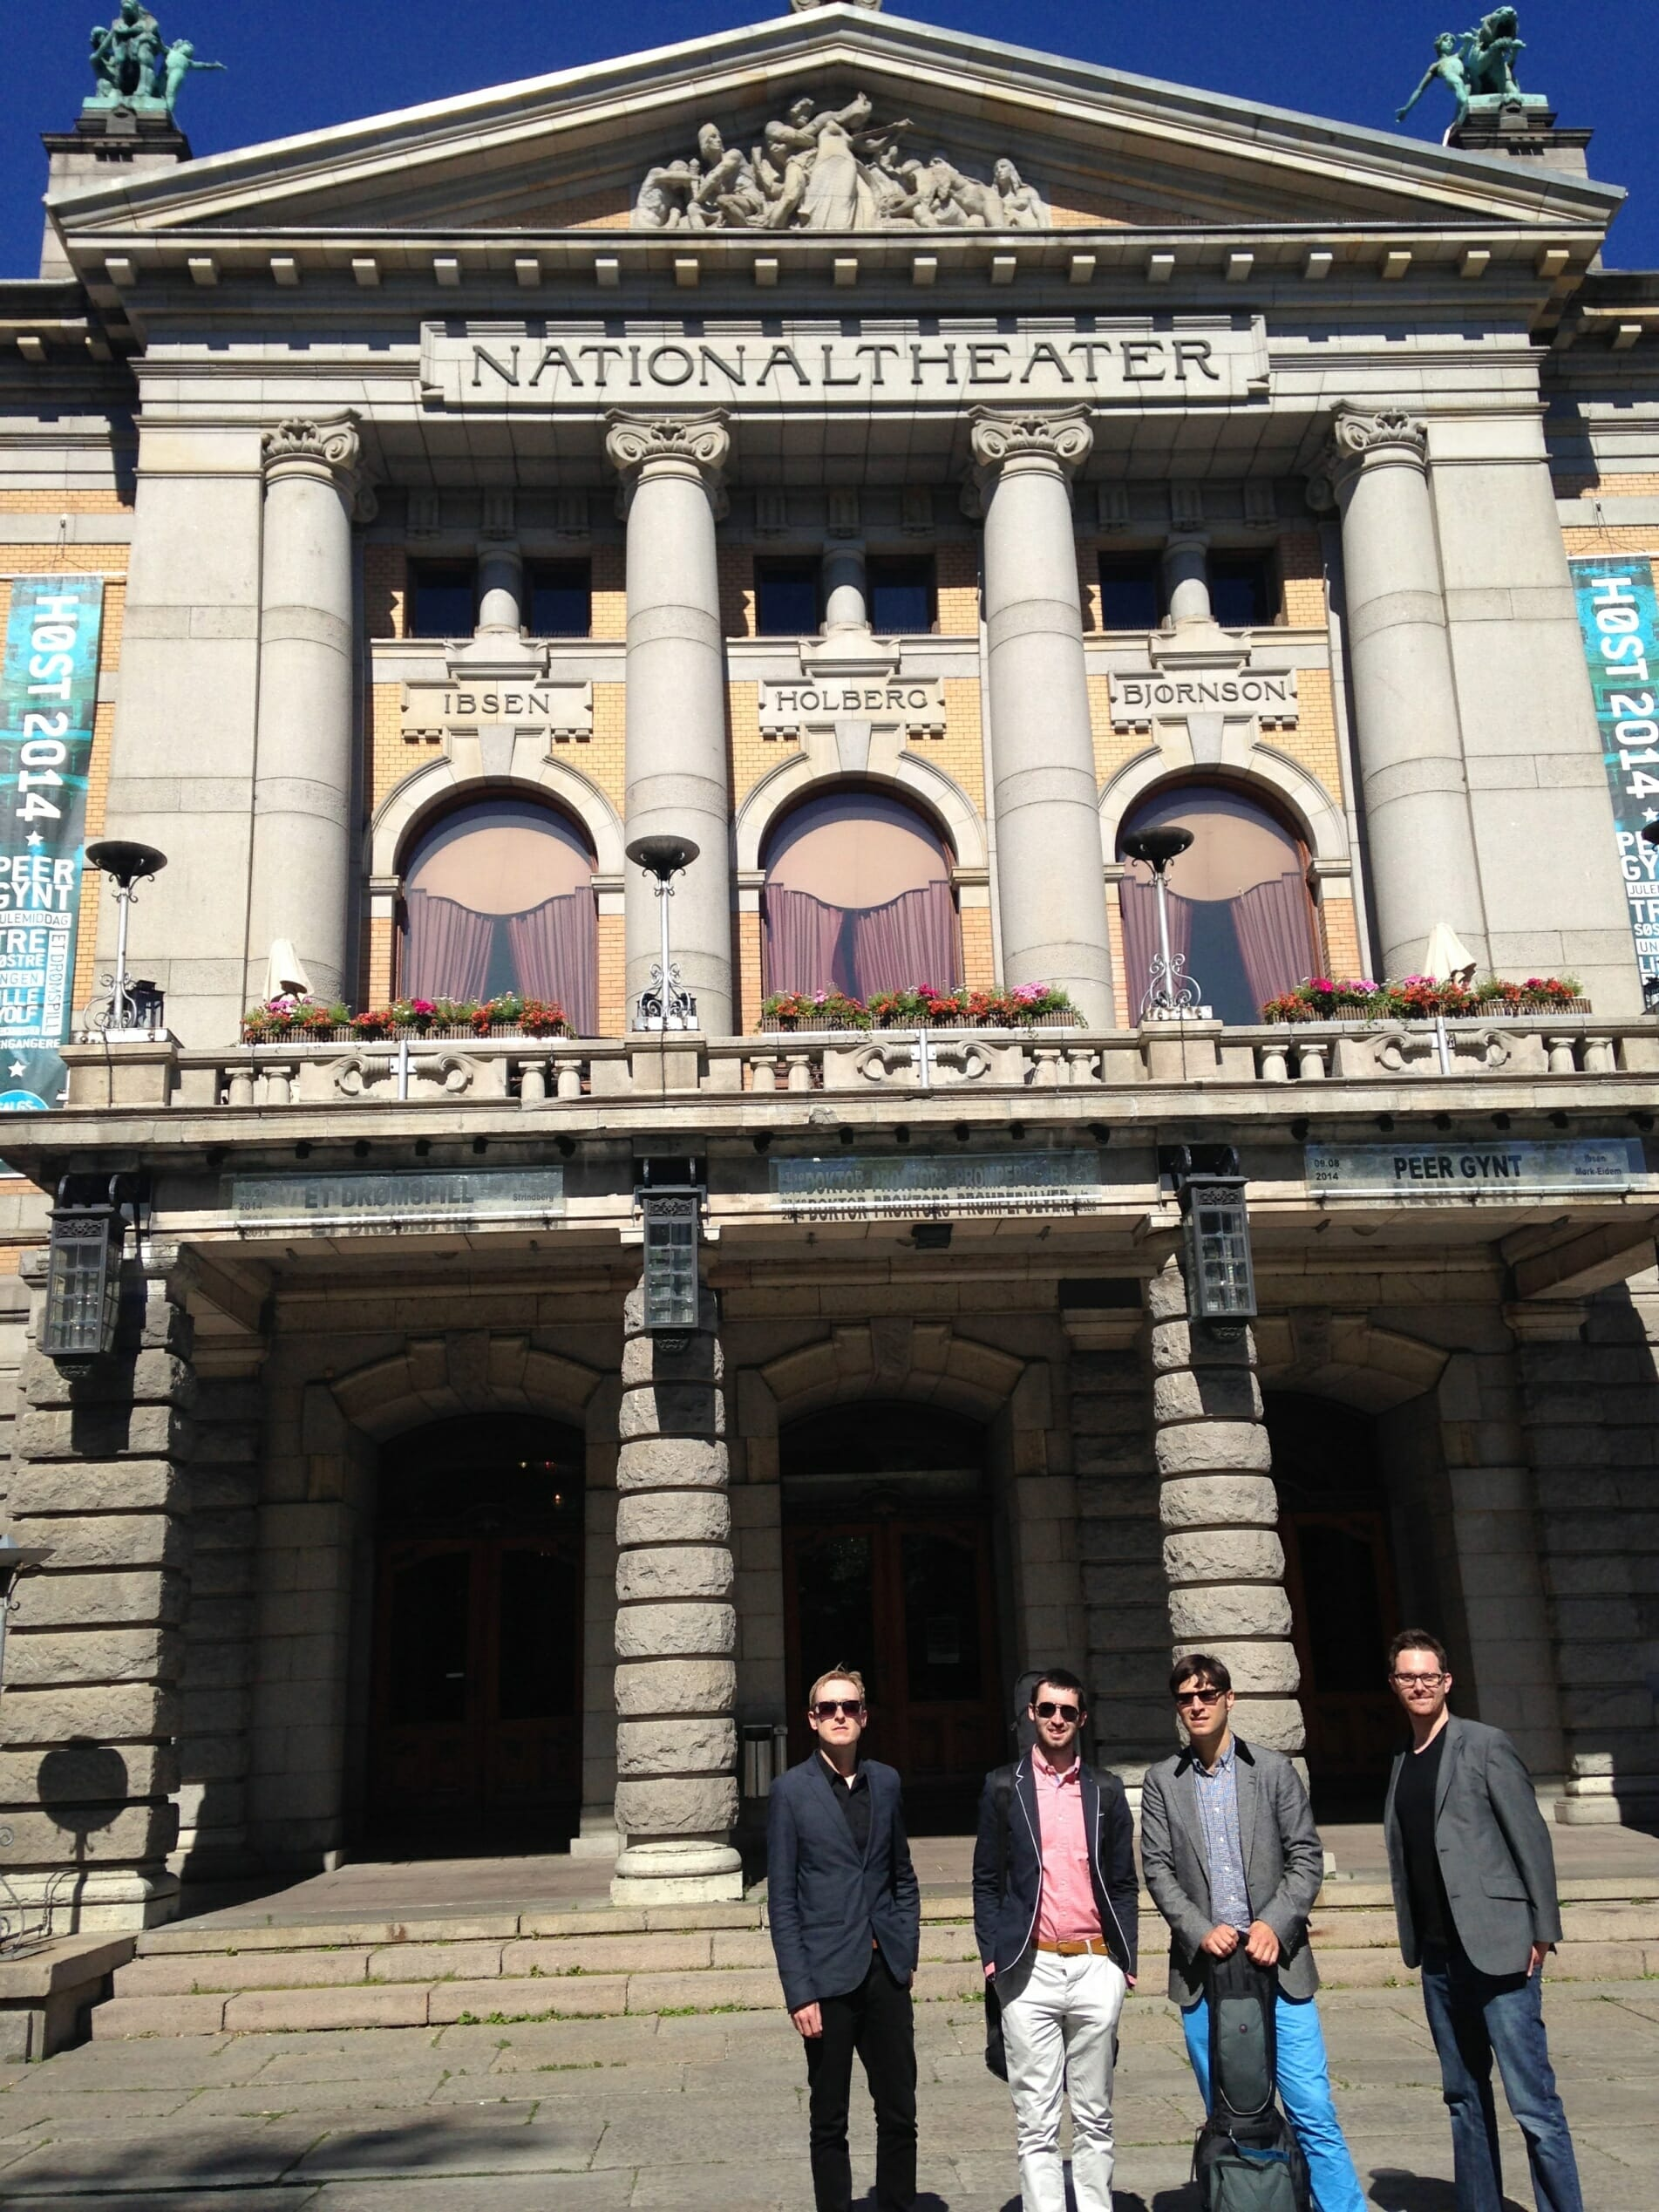 The Zoots in Oslo at the National Theater